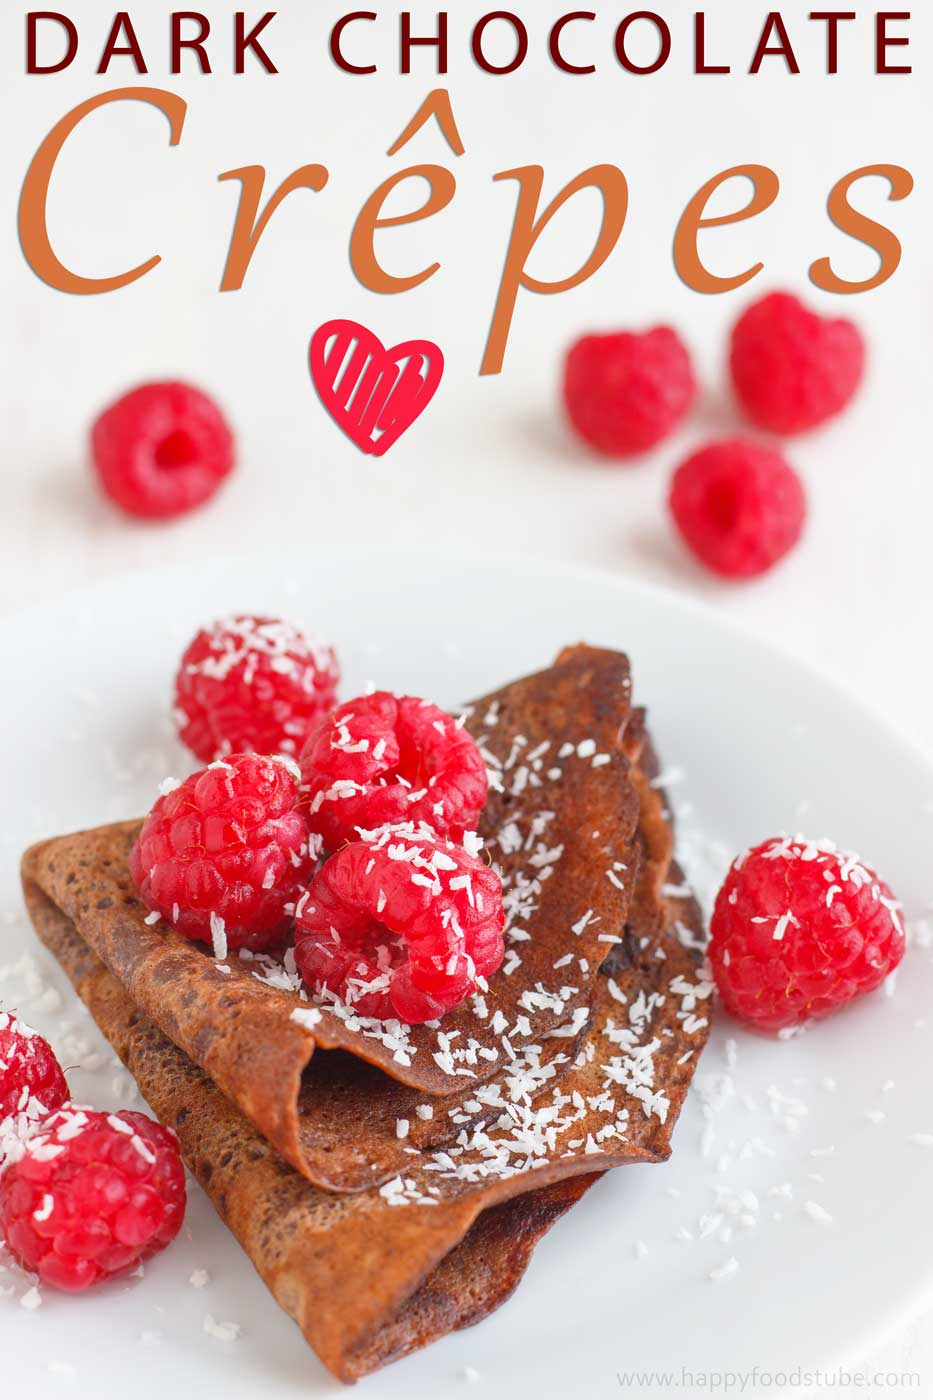 Dark Chocolate Crepes with Raspberries